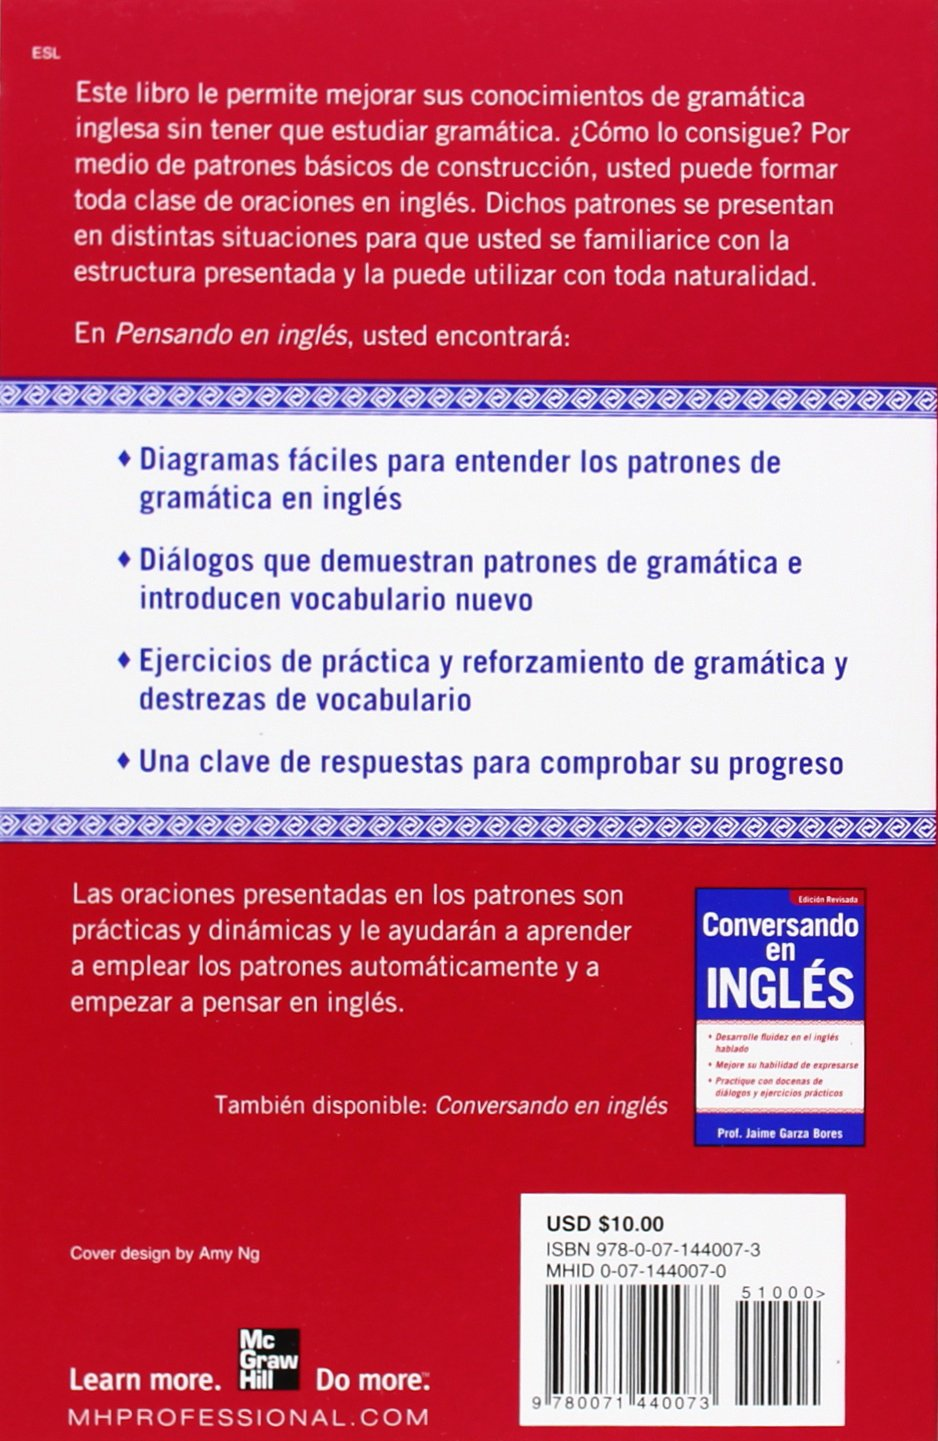 Pensando en ingles: Thinking in English: Amazon.es: Jaime Garza Bores: Libros en idiomas extranjeros